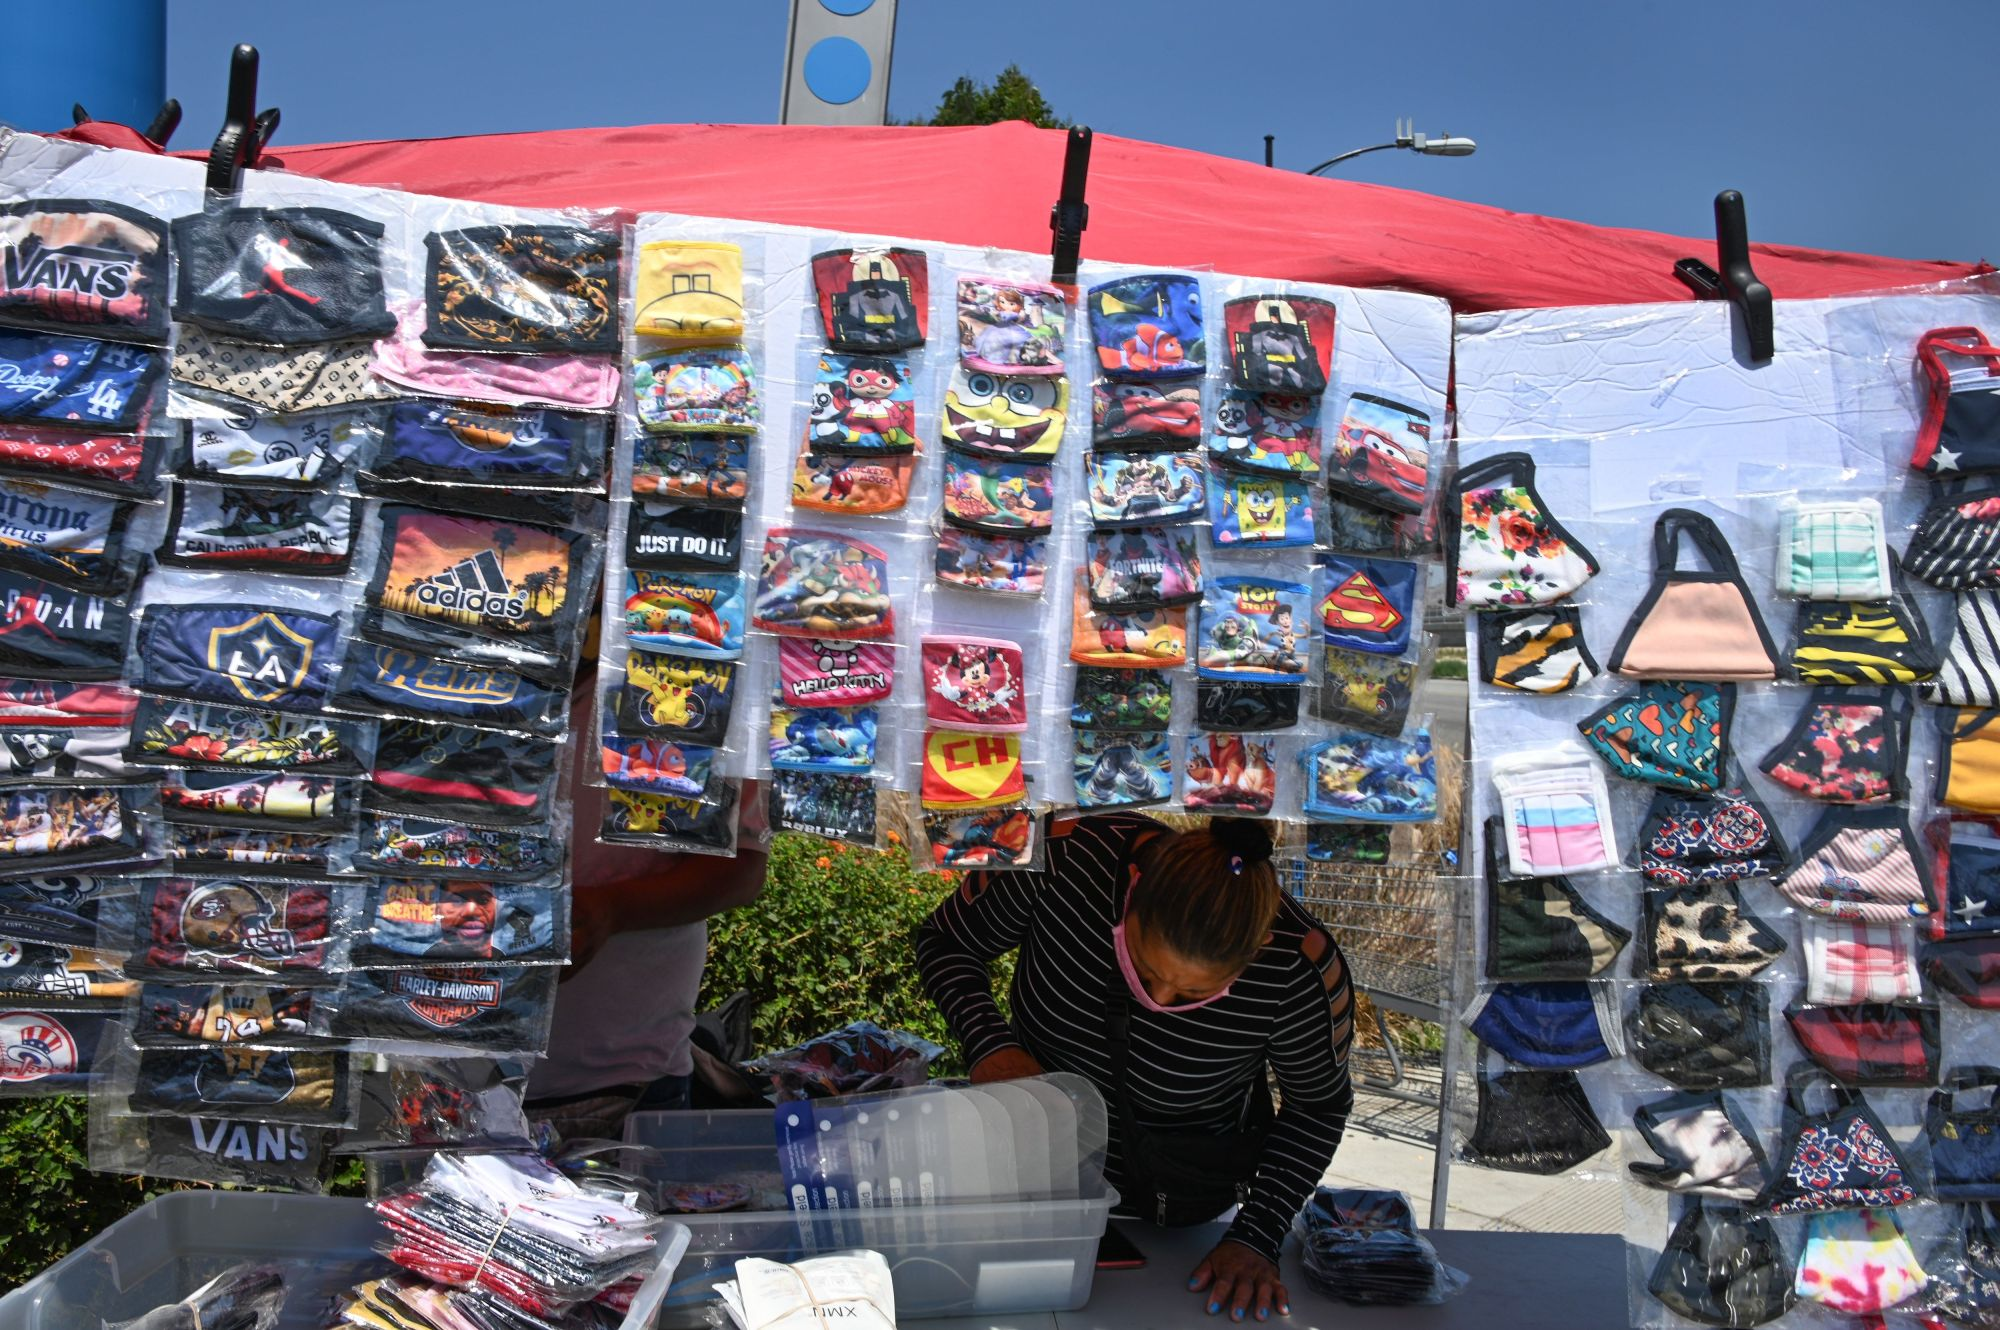 A vendor sells masks outside a Walmart store, July 22, 2020 in Burbank. (ROBYN BECK/AFP via Getty Images)